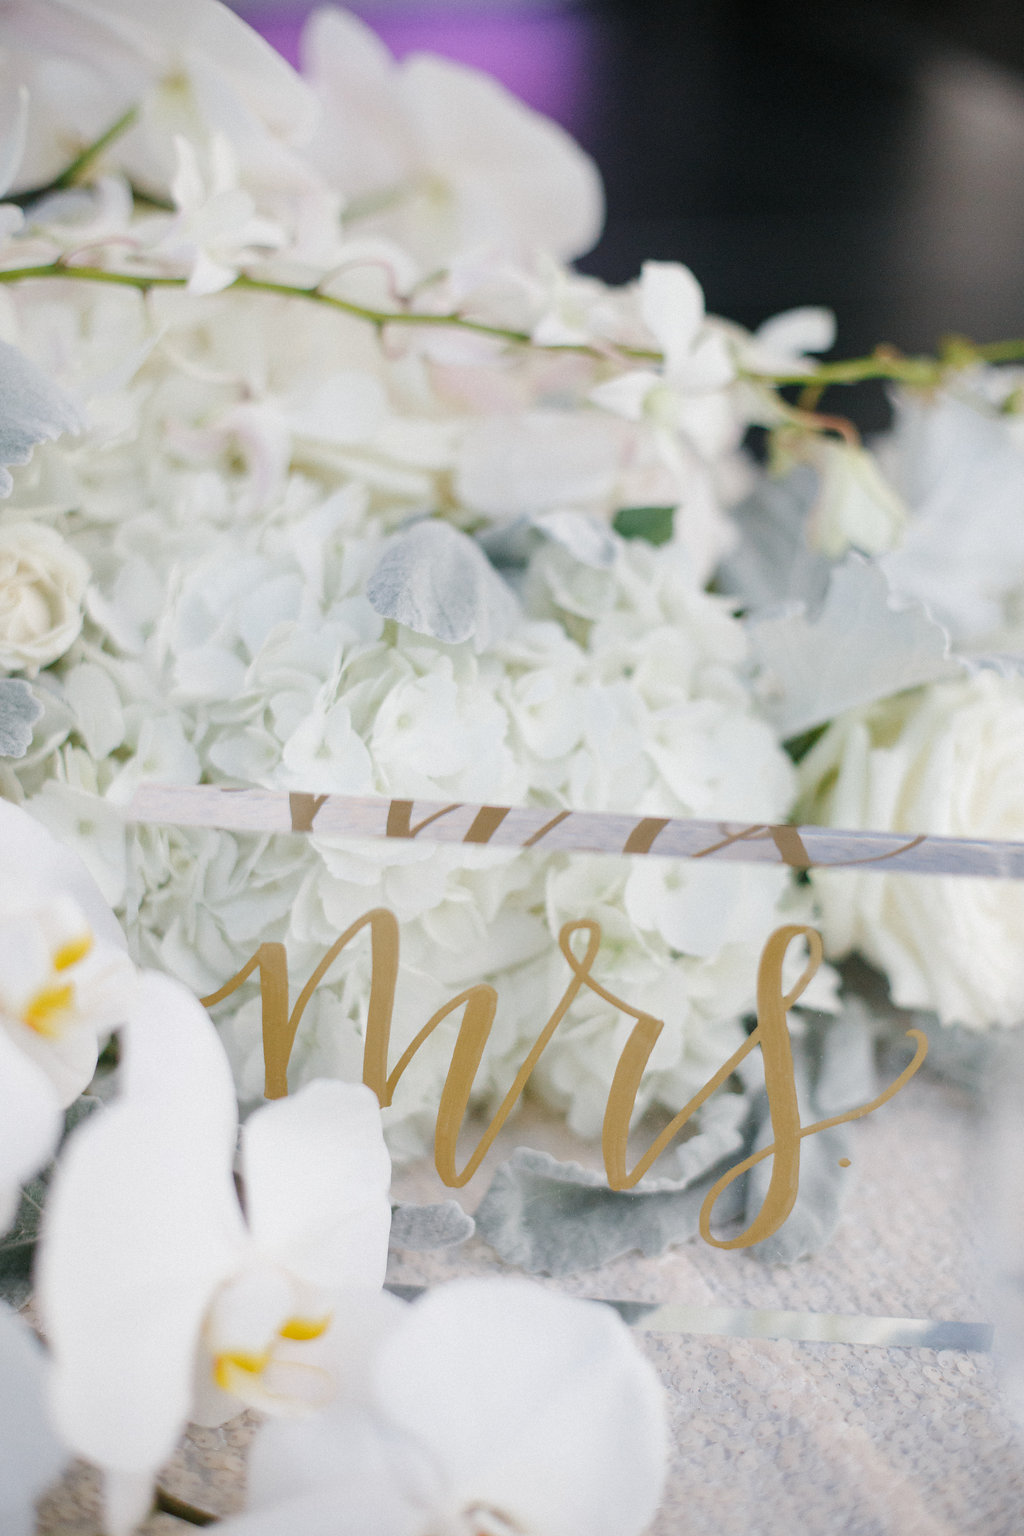 chicago_wedding_white_gold_calligraphy_mrs_lucite.jpg